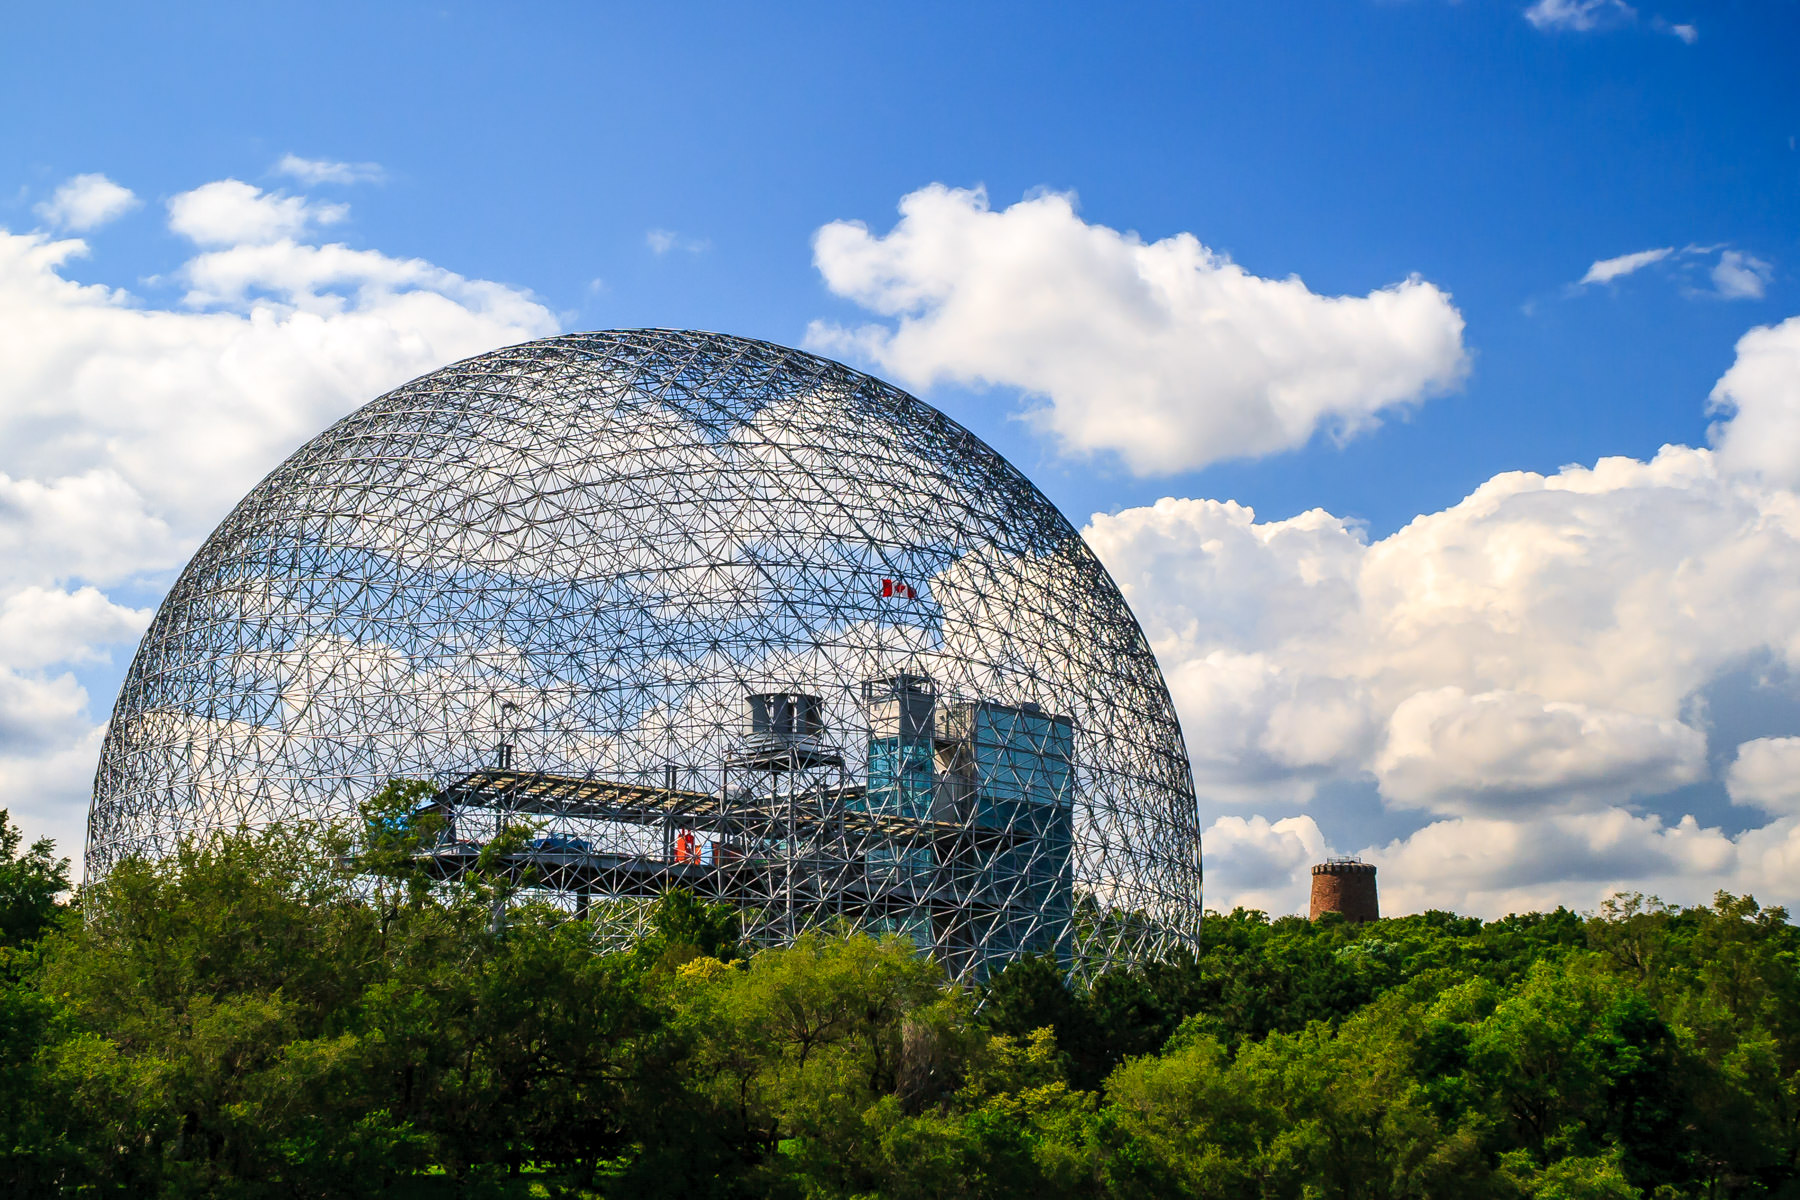 The Montréal Biosphère, originally built as the United States' pavilion at Expo 67, located in Parc Jean-Drapeau, on Île Sainte-Hélène in the Saint Lawrence River.